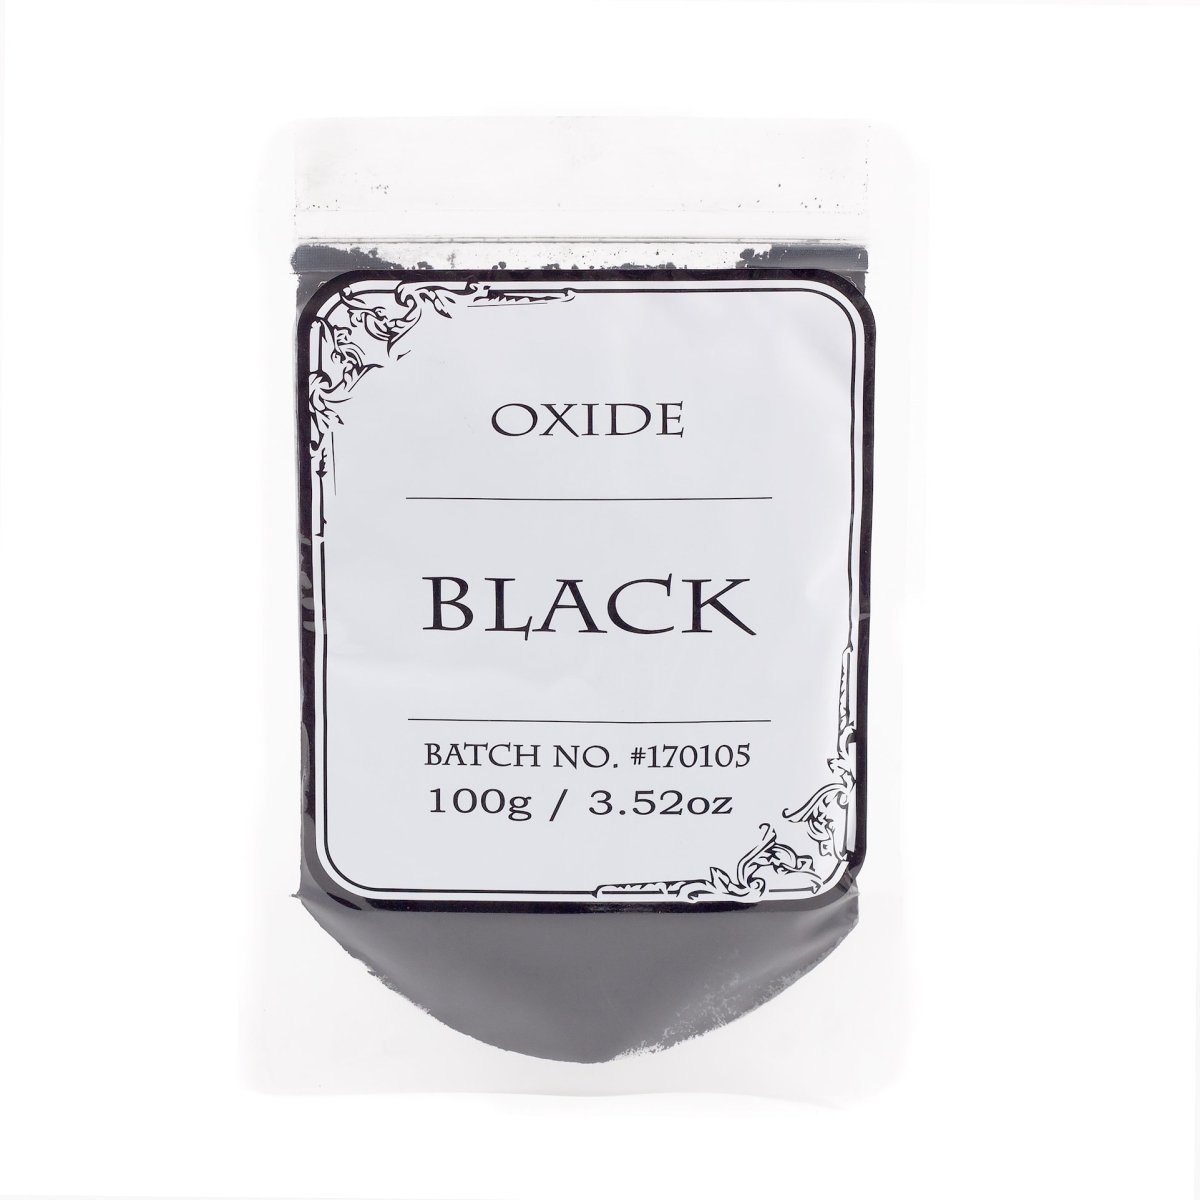 Black Oxide Mineral Powder - Mystic Moments UK